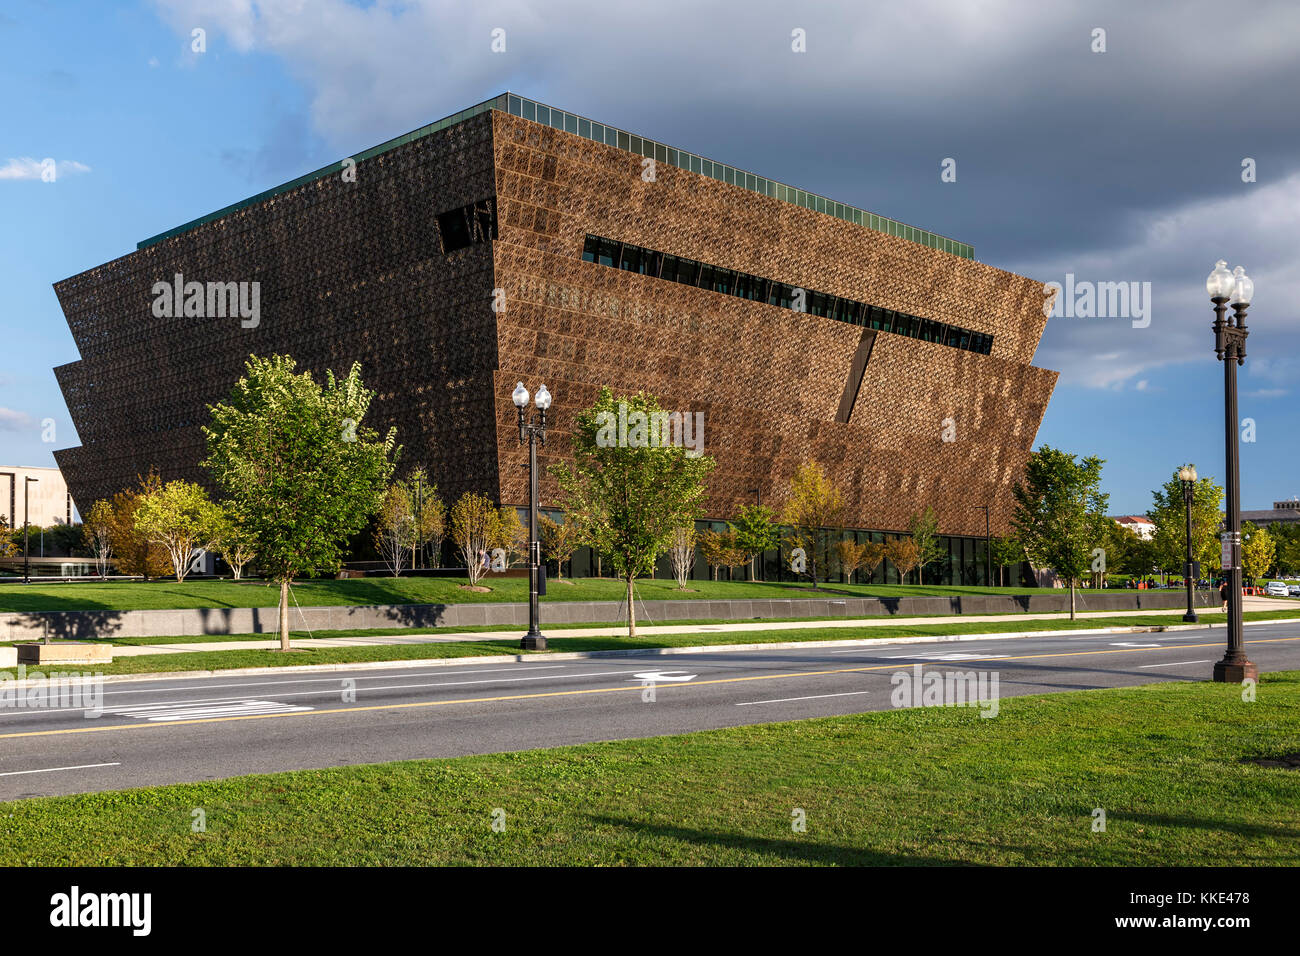 Smithsonian National Museum of African American History and Culture, Washington, District of Columbia USA - Stock Image